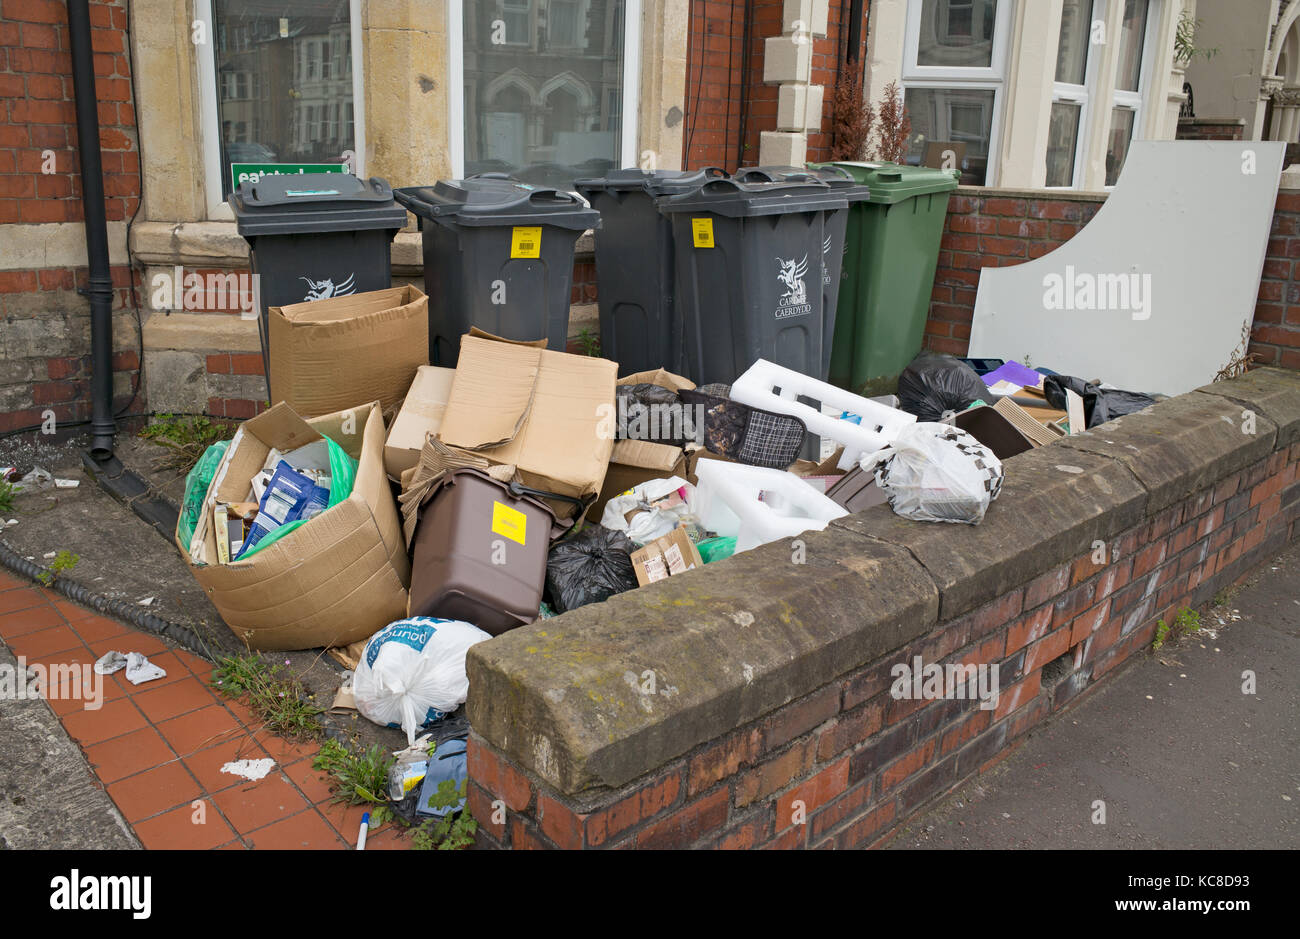 Rubbish awaiting collection at end of academic year from front garden of house formerly occupied by students, Cardiff, - Stock Image